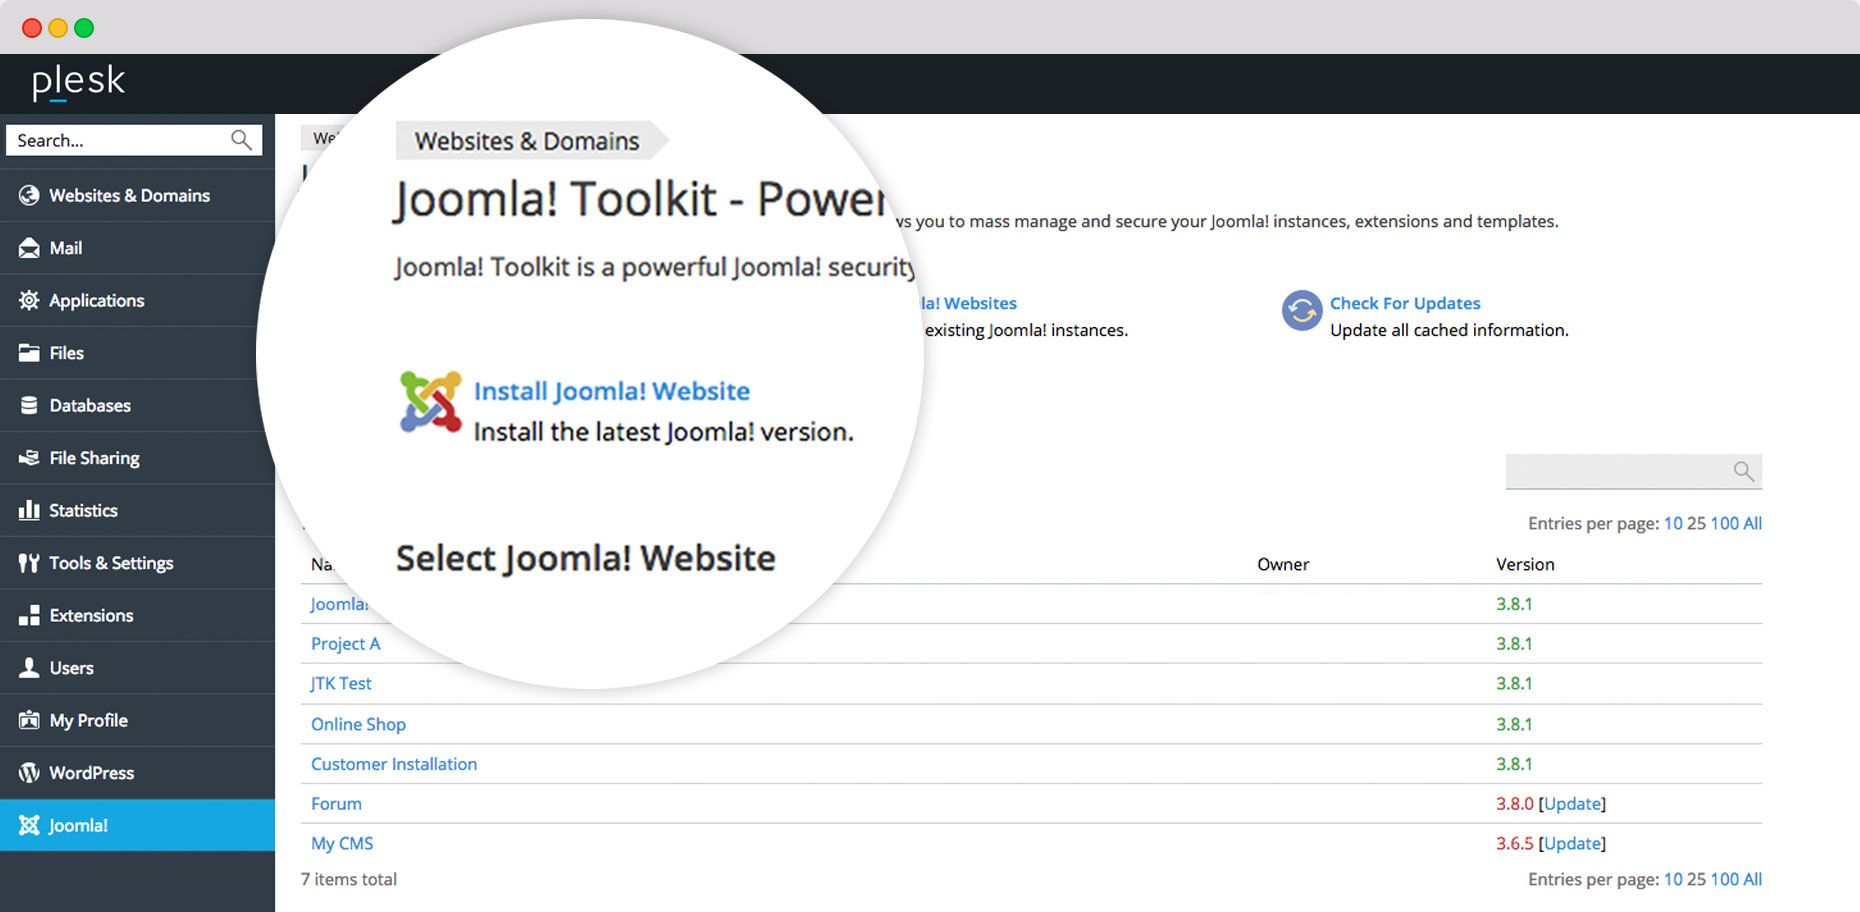 Joomla-Toolkit Screenshot